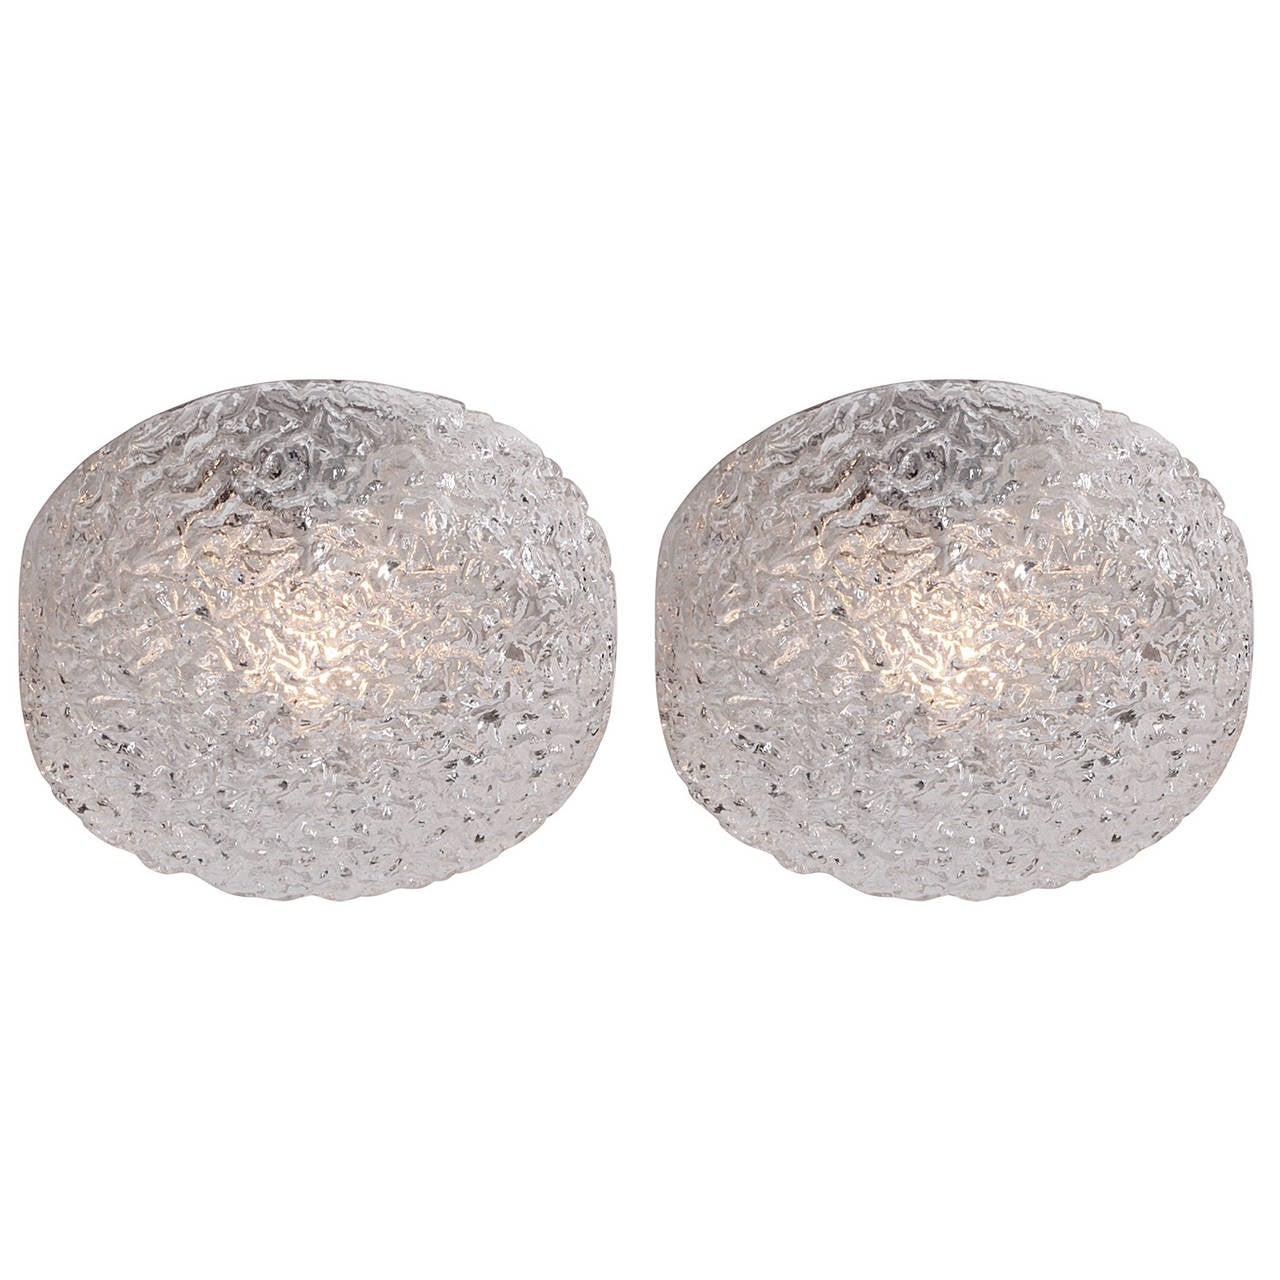 One of Two Bubble Glass Flush Mounts or Wall Sconces by GLASHÜTTE LIMBURG